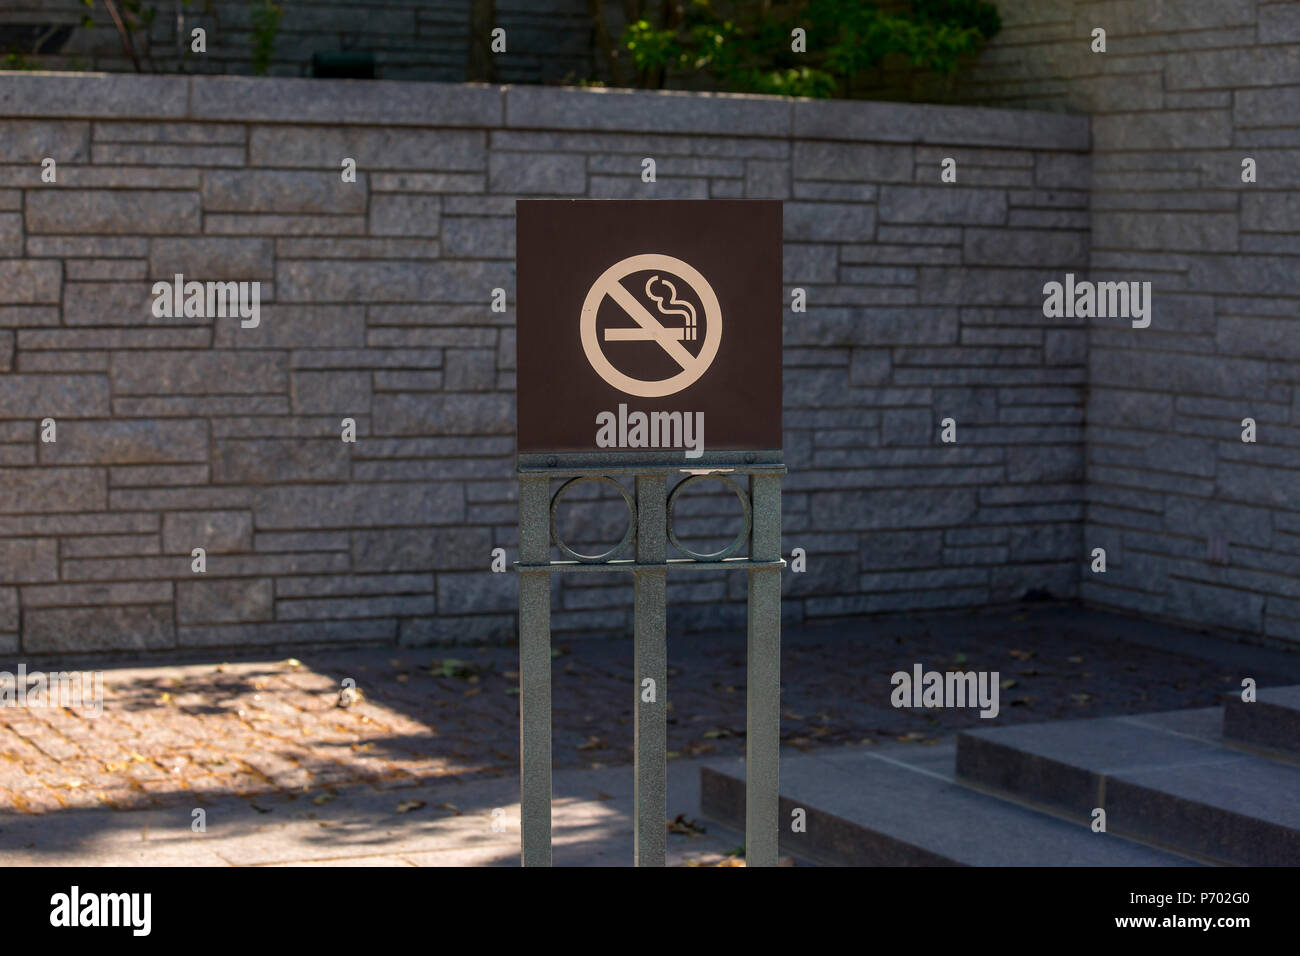 No smoking sign near brick wall - Stock Image